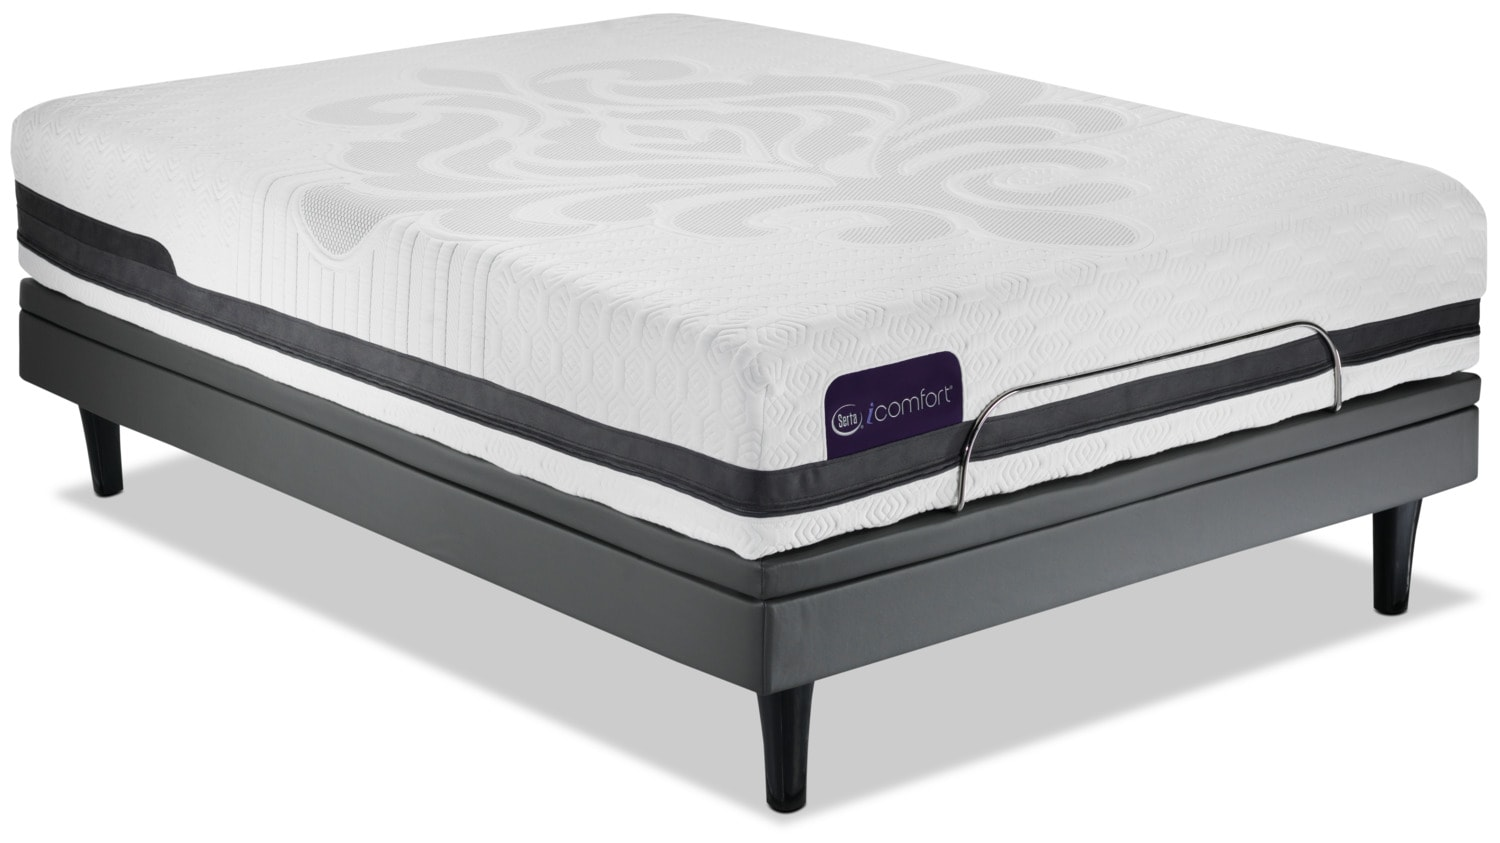 Serta Icomfort Eco Peacefulness Plush Twin Xl Mattress Motion Perfect Iii Complete Adjustable